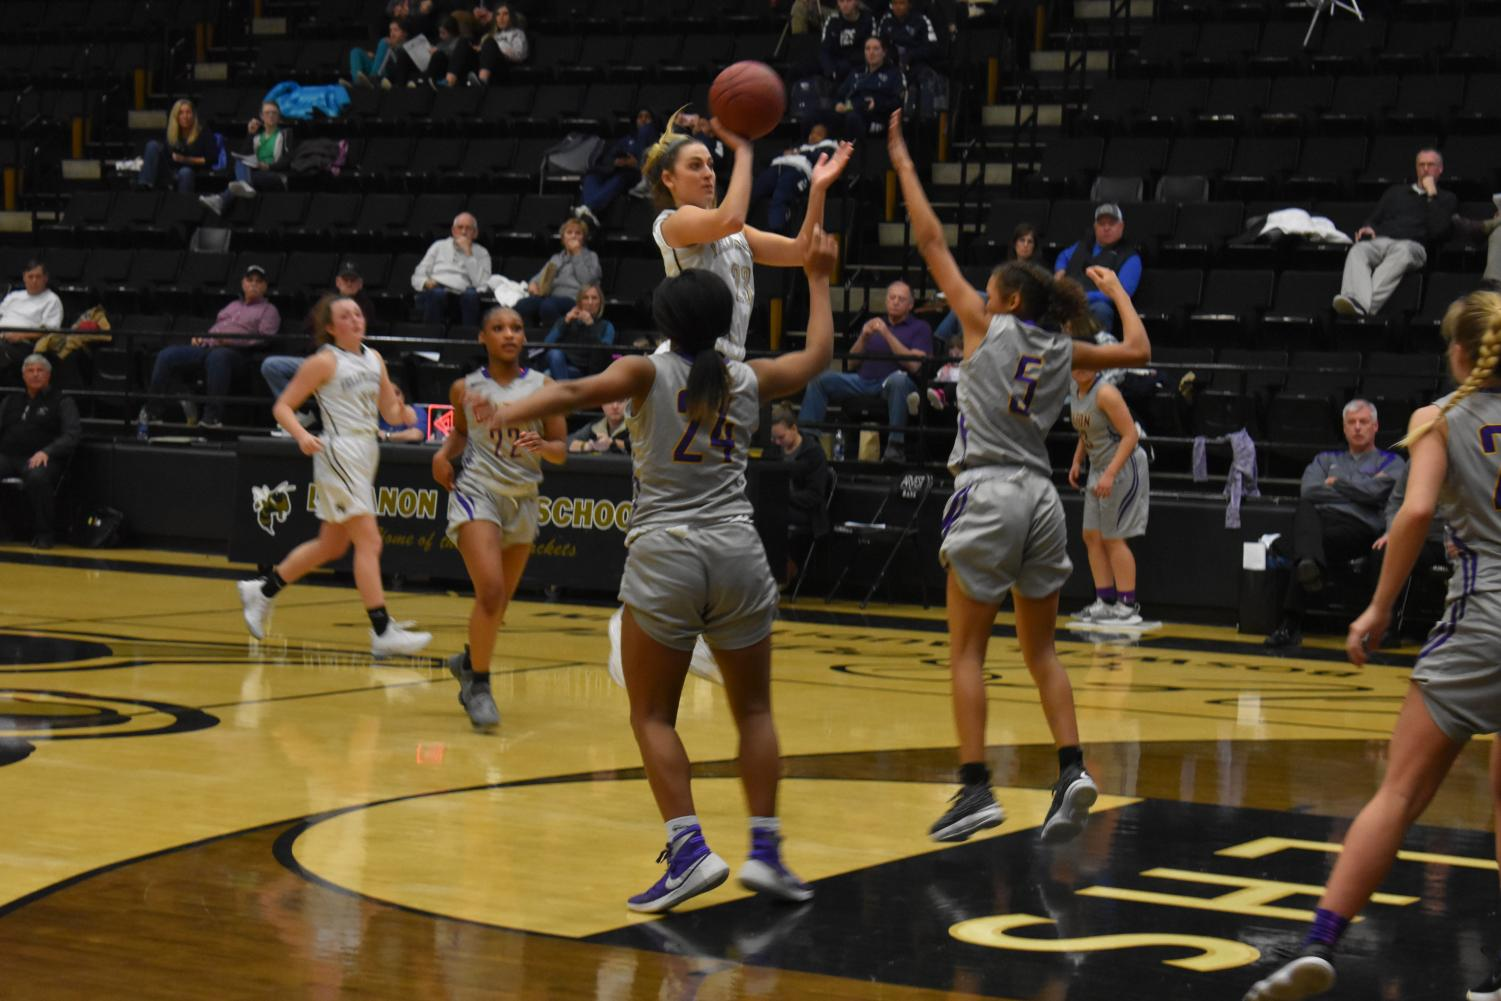 Photo one: photo by: Braeden Slavens Senior Kamryn Mack takes her shot. The Lebanon Lady Yellow Jacket basketball team had a great season thanks to Coach Payne. The Girls has a 14-10 winning streak and competed in the district championship game.